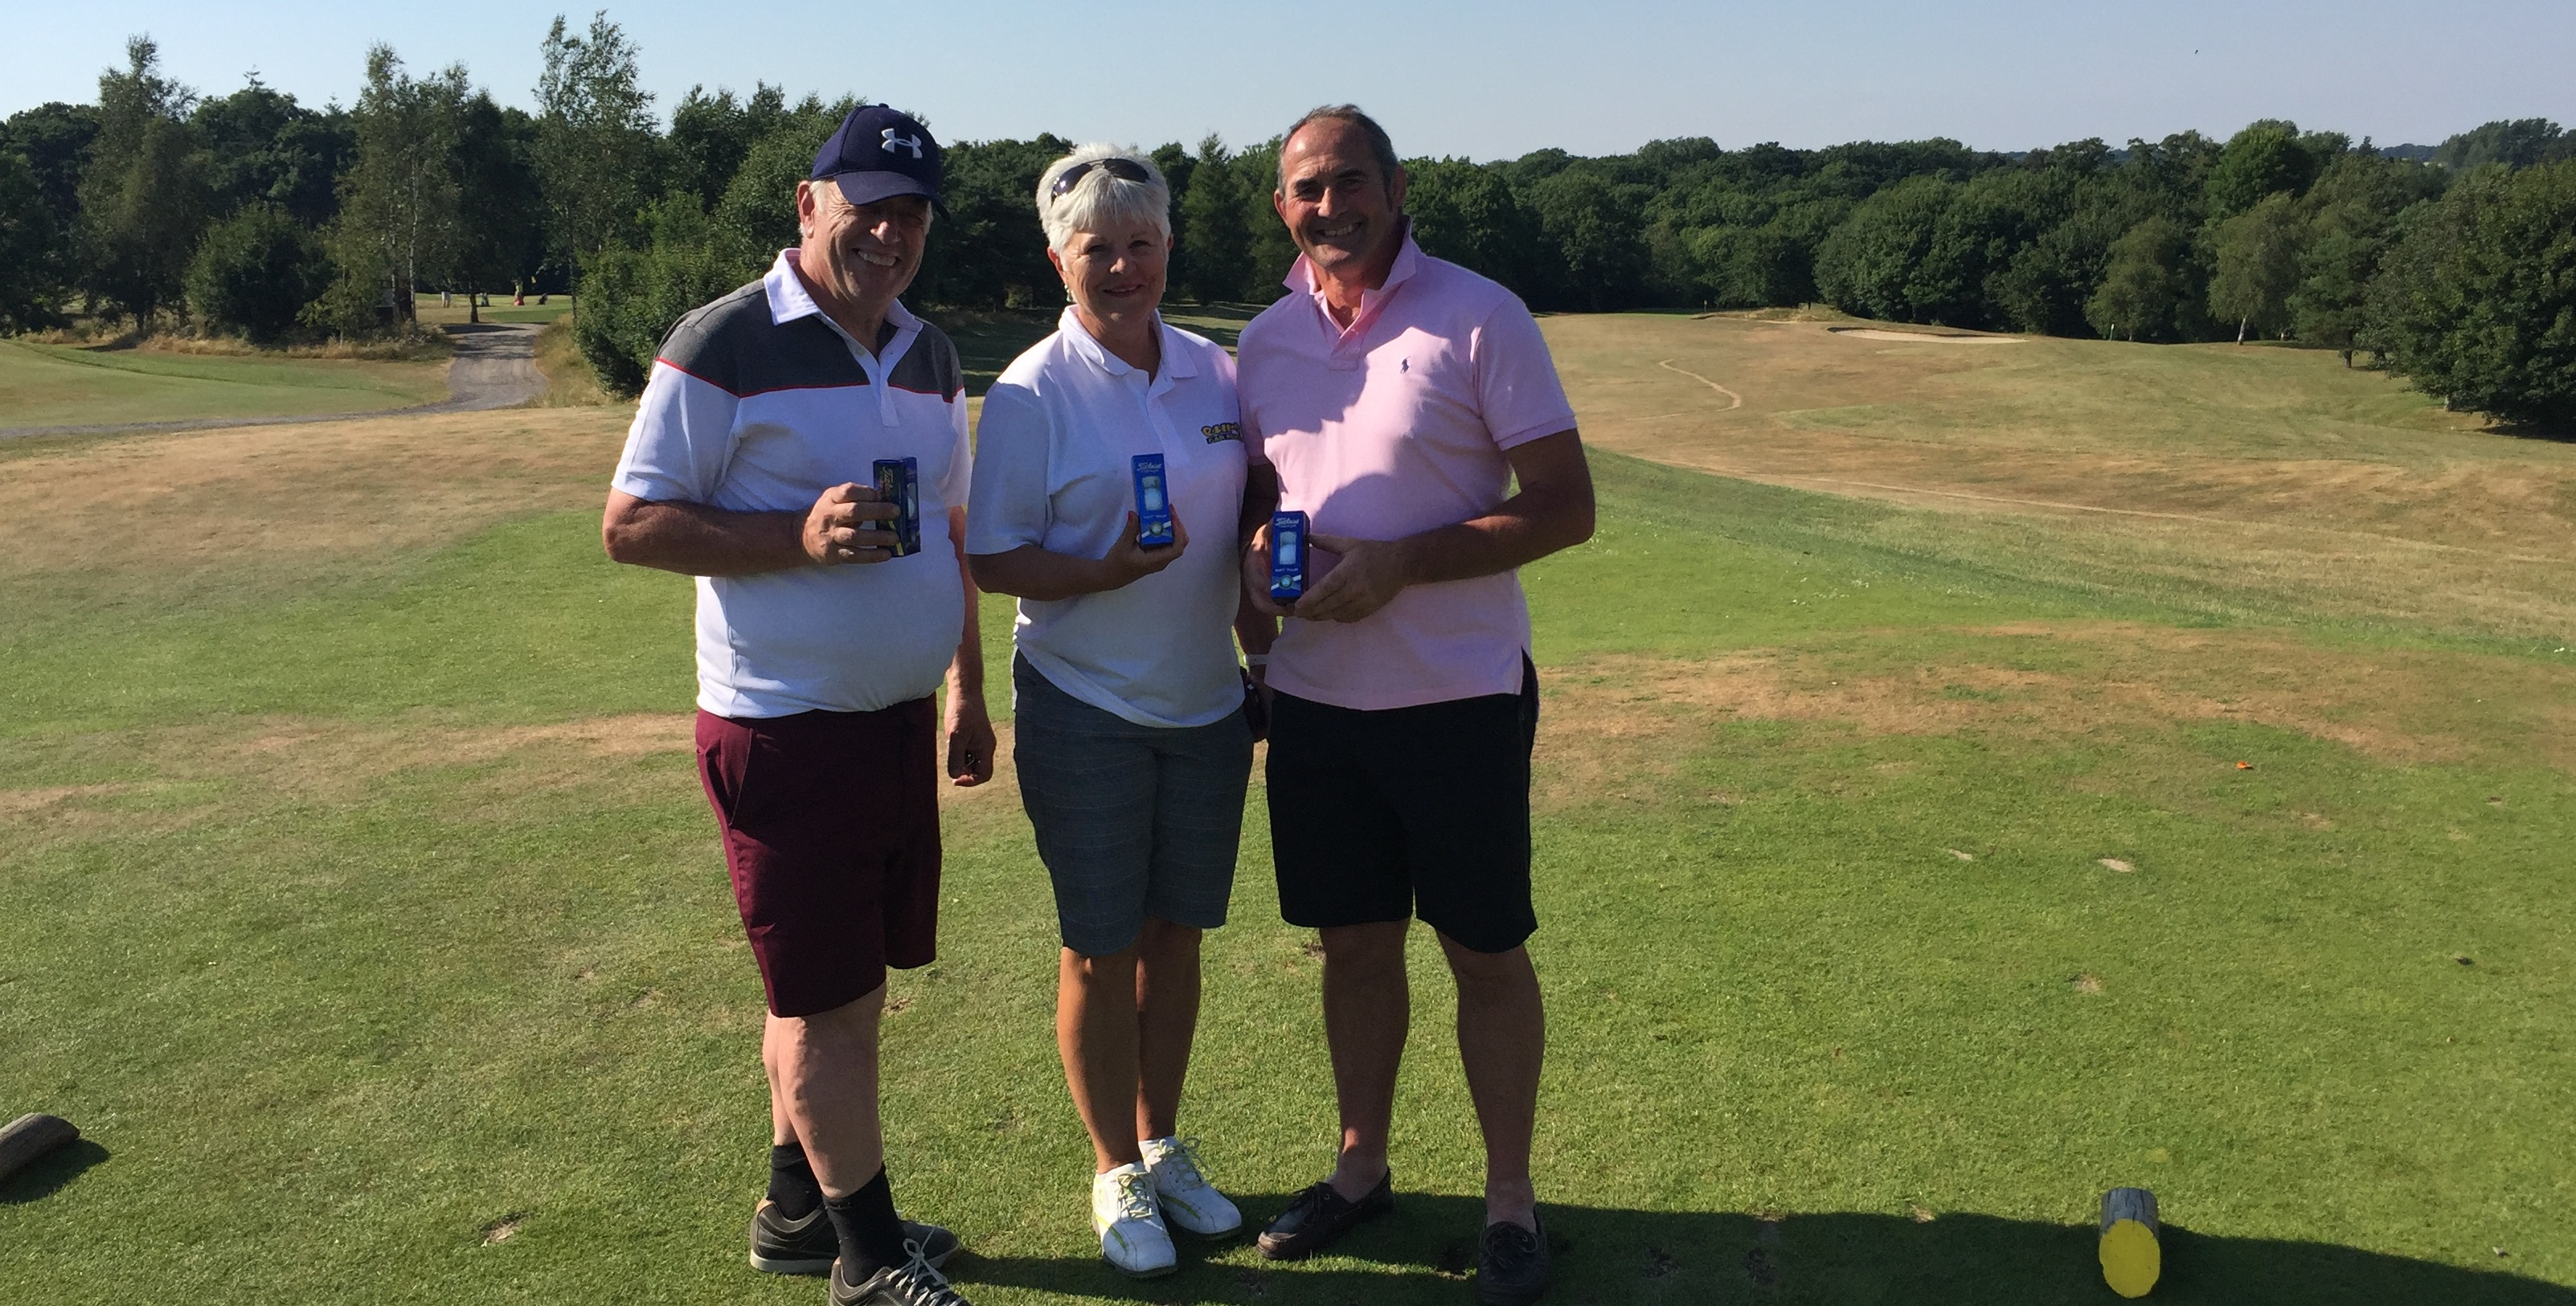 Alan Waters, Jenny Swift and Chris Padget - Our Par 3 challenge winners Cumberwell Park 2018